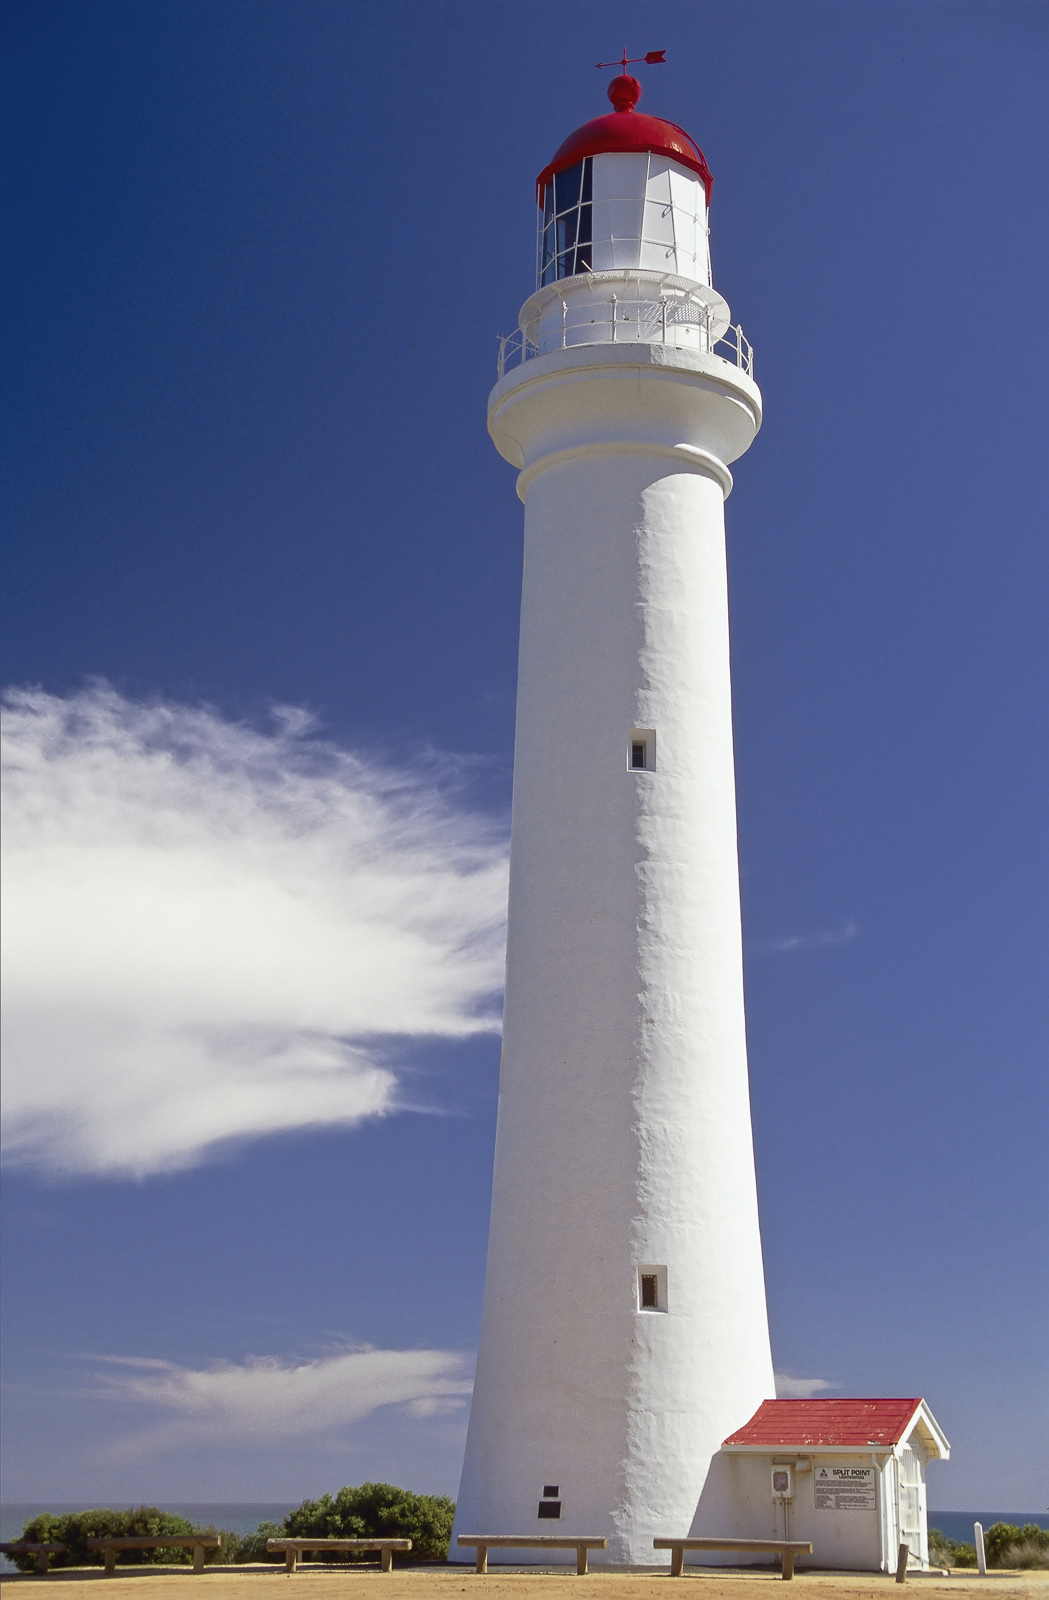 Spit Point Lighthouse is a pristine white tower with an attached entrance shed complete with red roofs on both the lamp housing...